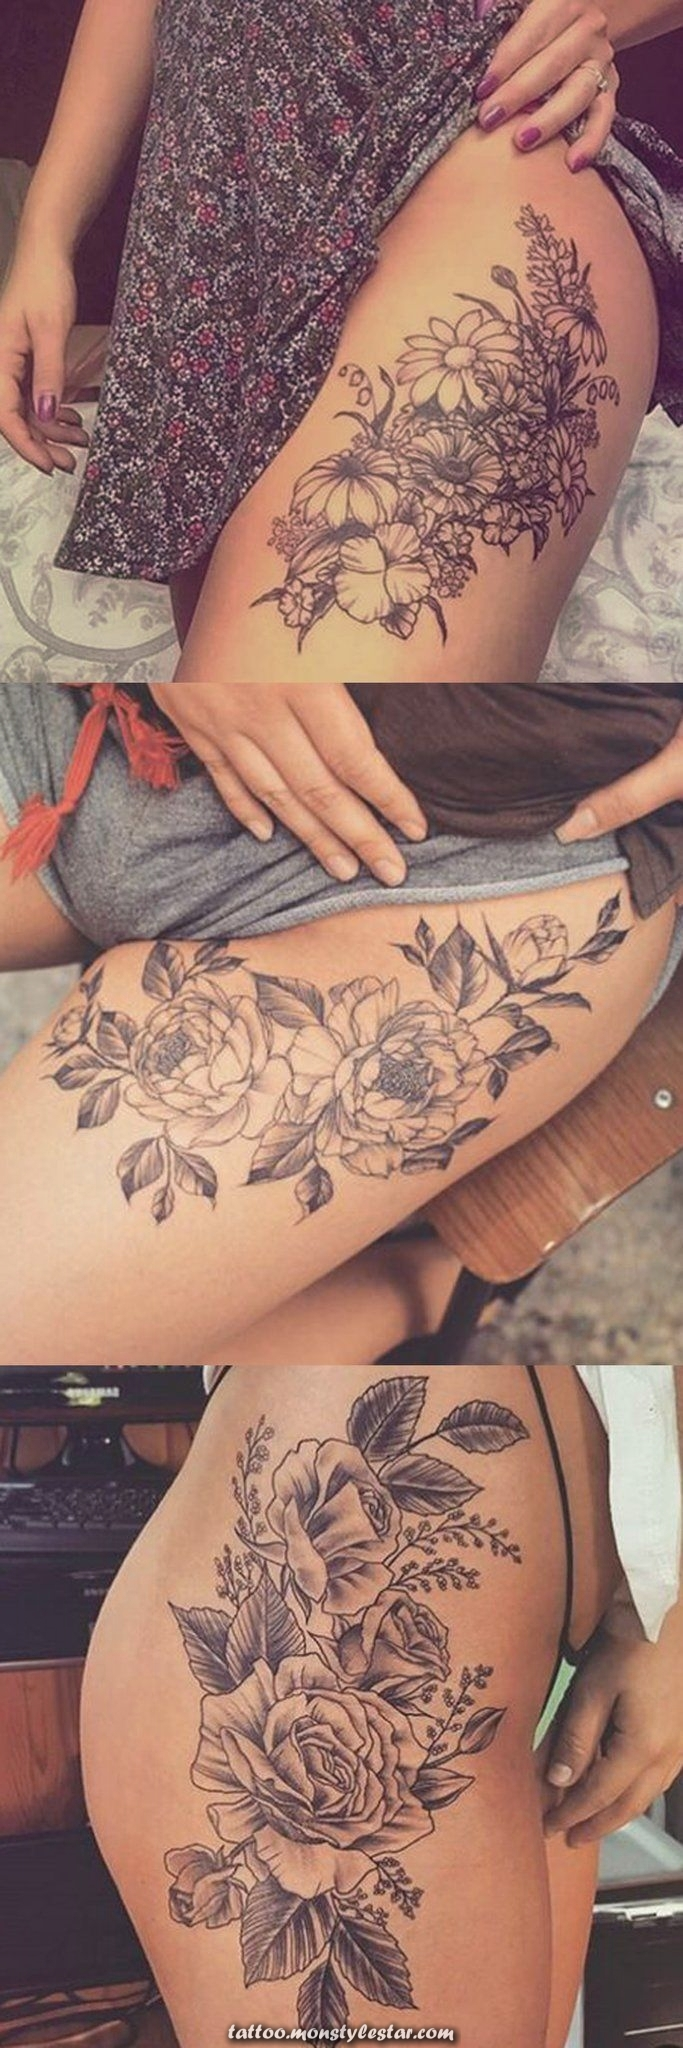 30 delicate ideas for flower tattoos - Amandine - Pin Through